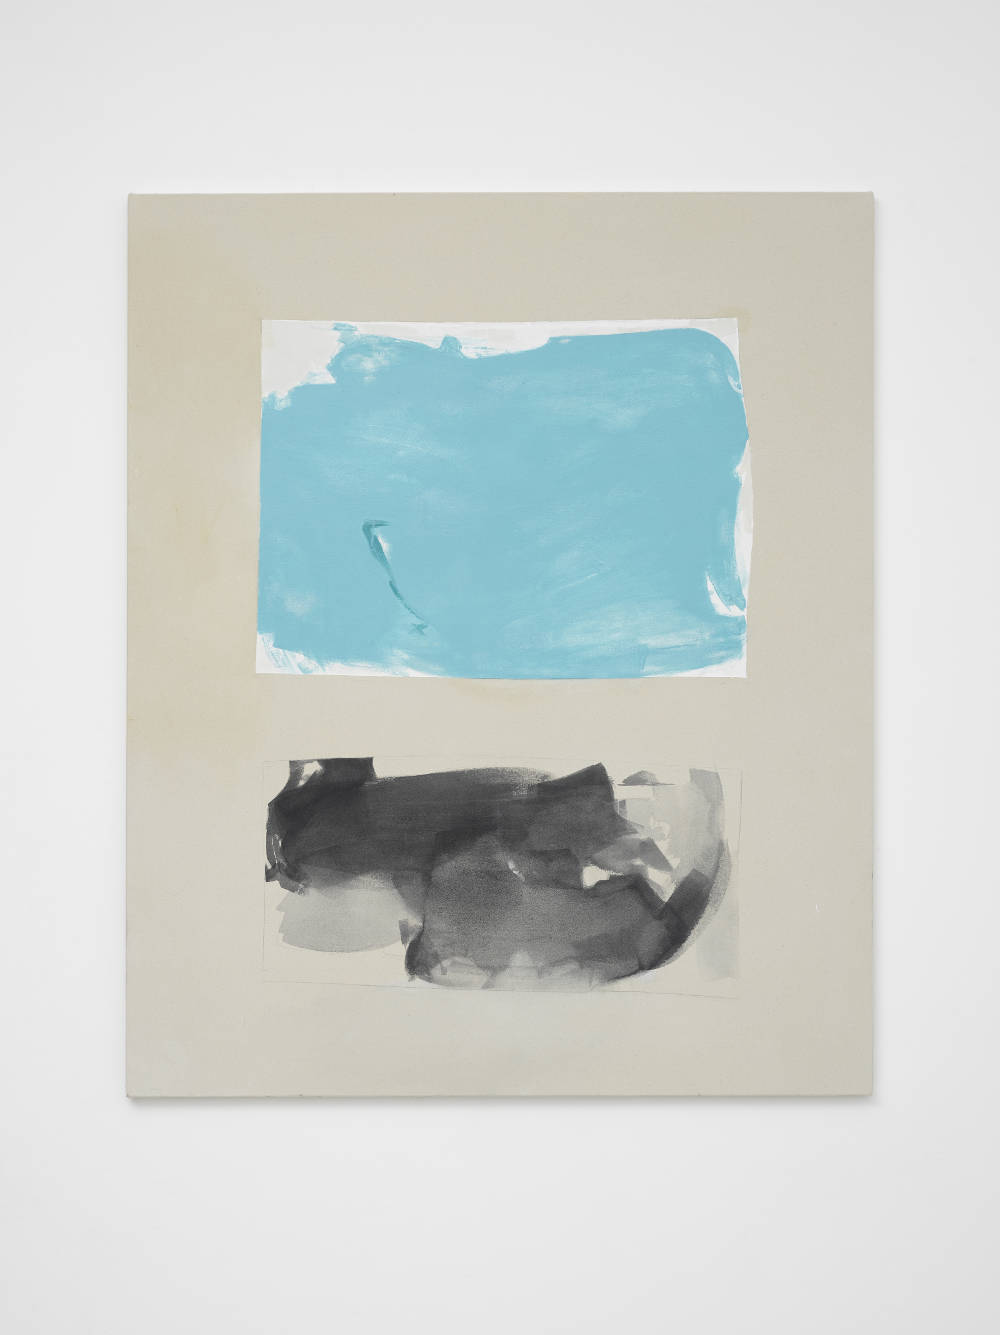 Peter Joseph, Turquoise and Black 2nd Version, 2015. Acrylic on cotton duck 46 x 38 inches (116.8 x 96.5 cm) © Peter Joseph; Courtesy Lisson Gallery. Photo by Jack Hems